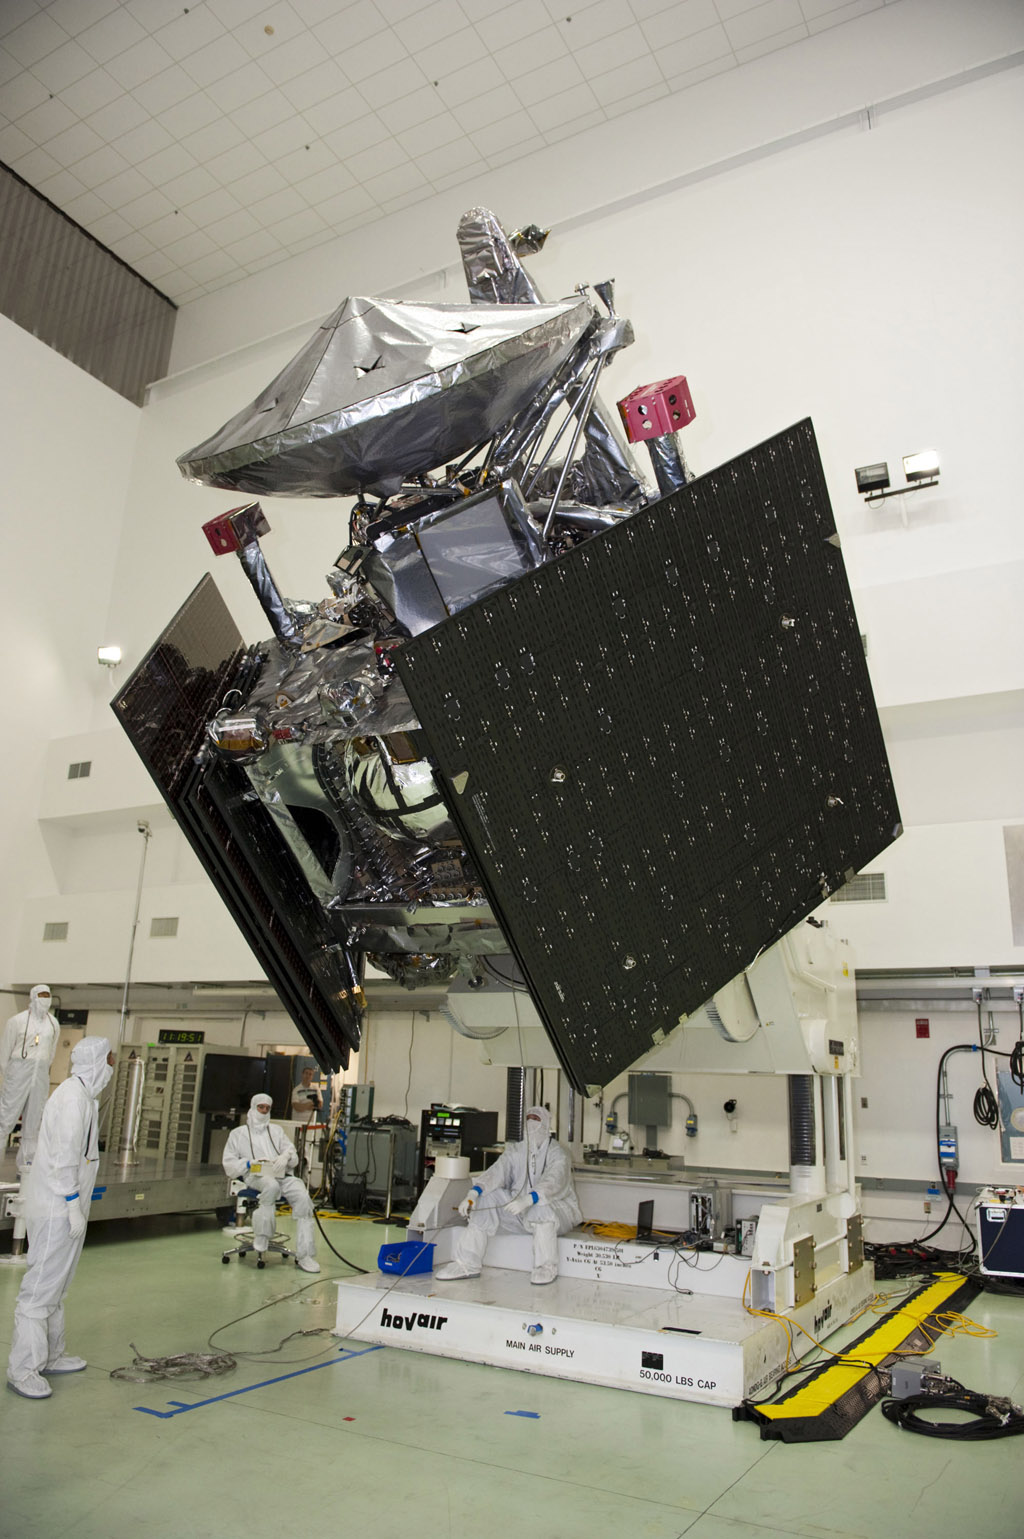 NASA's Juno spacecraft undergoes weight and balance testing at Astrotech payload processing facility, Titusville, Fla. June 16, 2011.